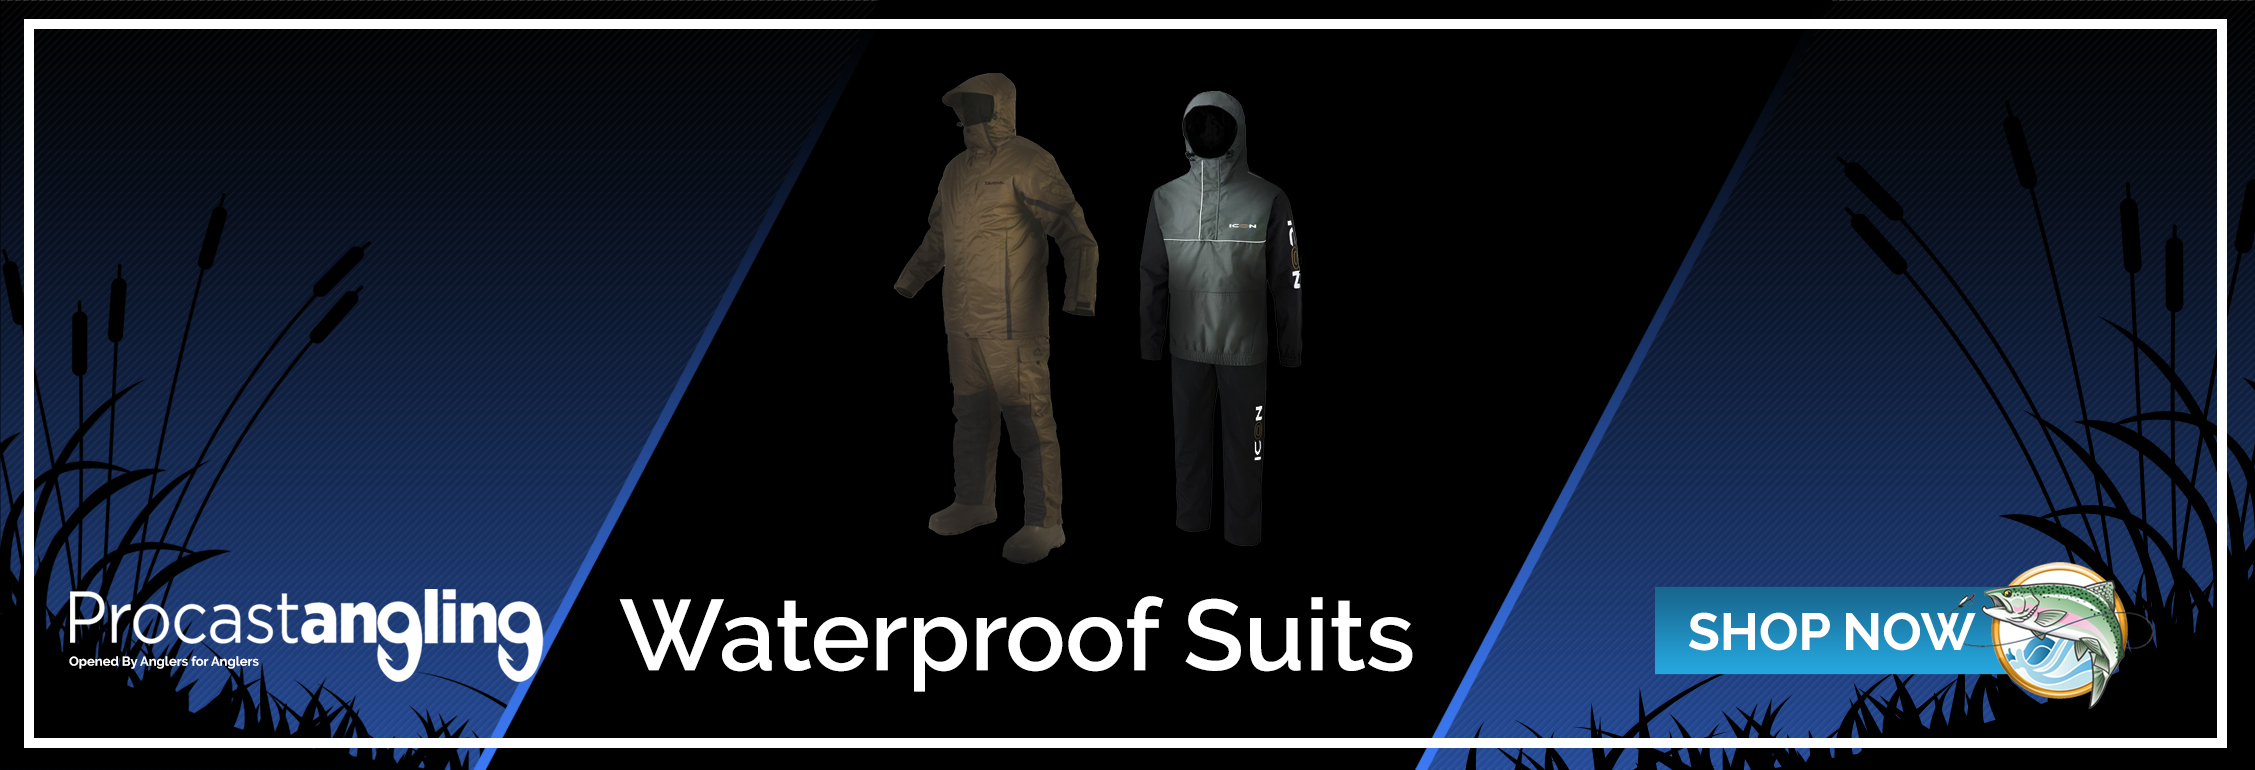 WATERPROOF SUITS